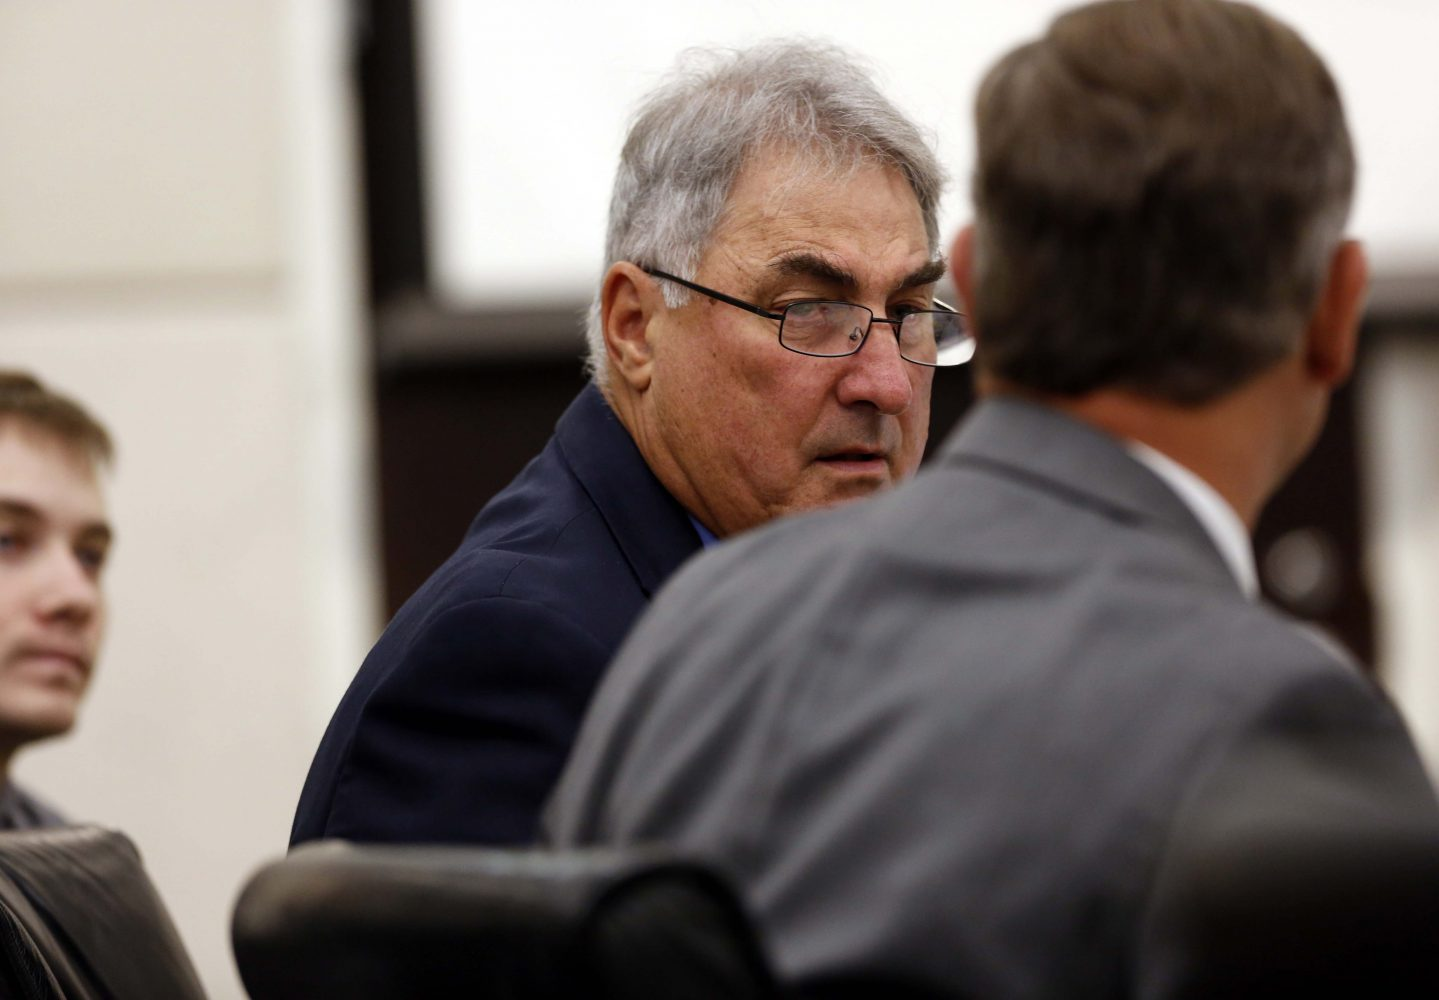 Defense attorneys Stephen Bernstein, facing, and Michael Ruppert talk during defendant Pedro Bravo's murder trial in courtroom 1B of the Alachua County Criminal Justice Center Friday, August 8, 2014.  Bravo is accused of killing University of Florida student Christian Aguilar.  (Doug Finger/The Gainesville Sun/Pool)